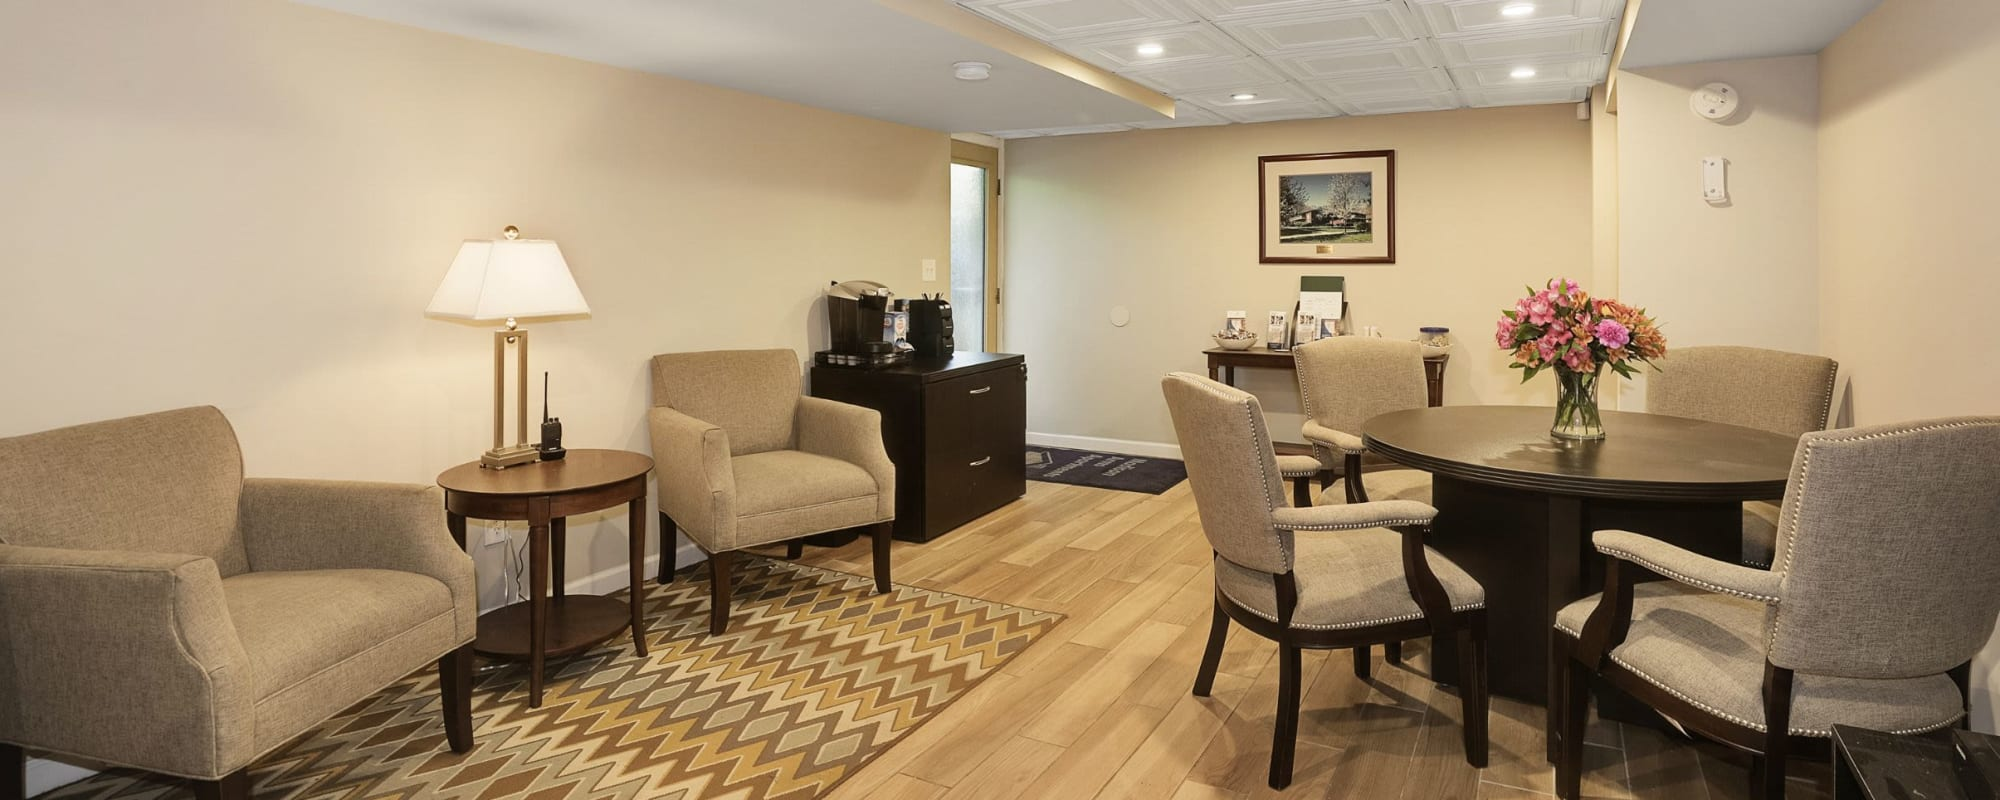 Amenities at Madison Arms in Old Bridge, New Jersey